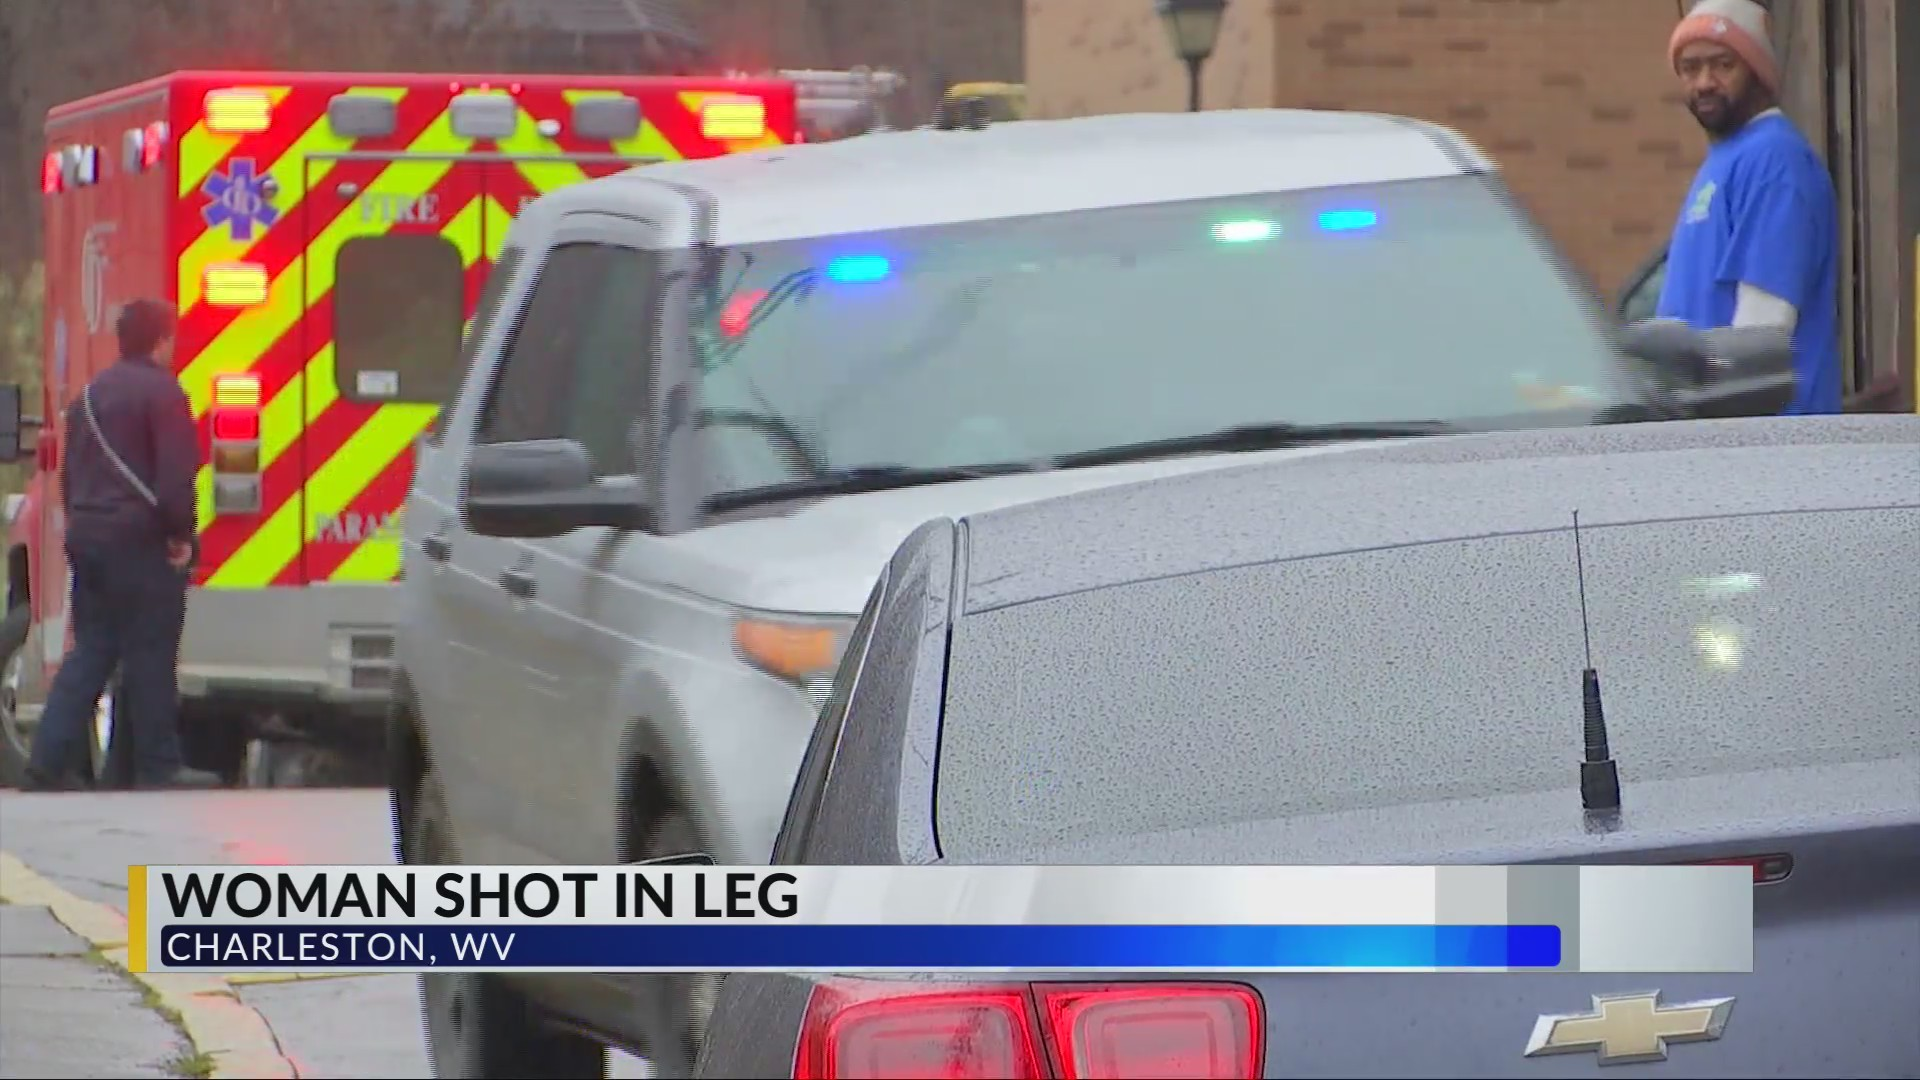 Charleston Police Investigating After Woman Shot in Leg